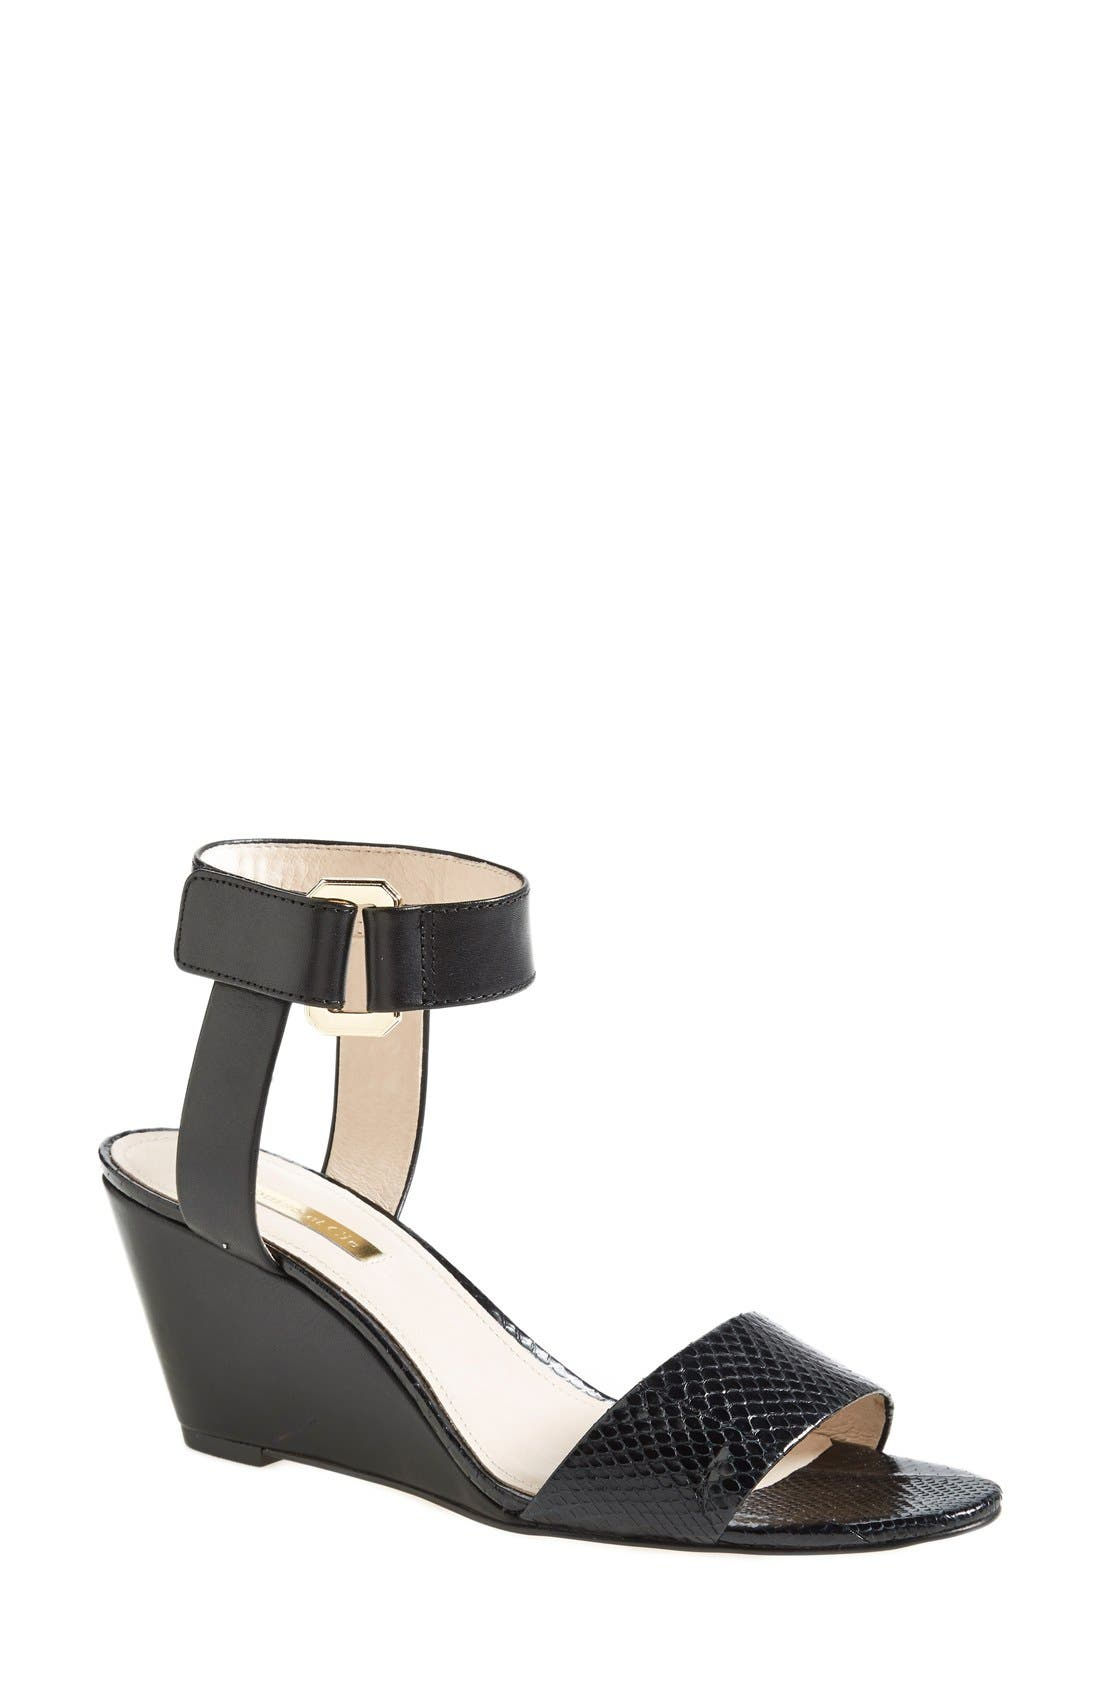 Alternate Image 1 Selected - Louise et Cie 'Phiona' Leather Ankle Strap Wedge Sandal (Women)